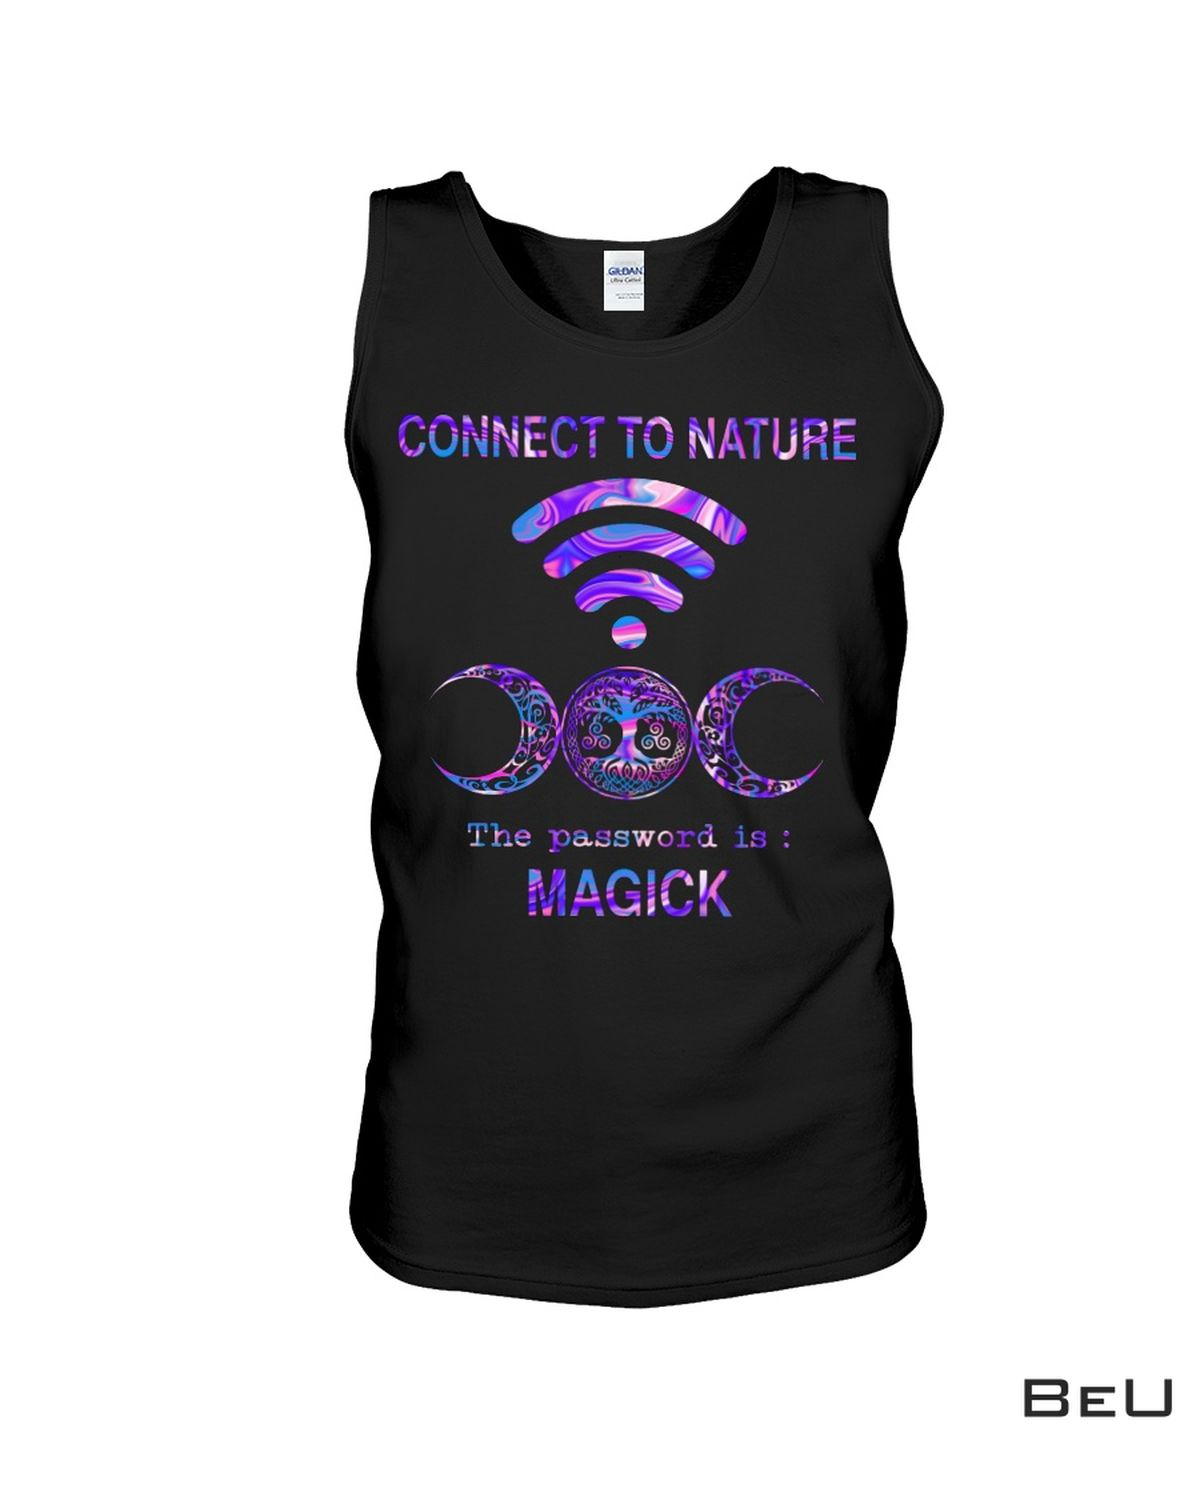 Witch Connect To Nature The Password Is Magick Shirtc